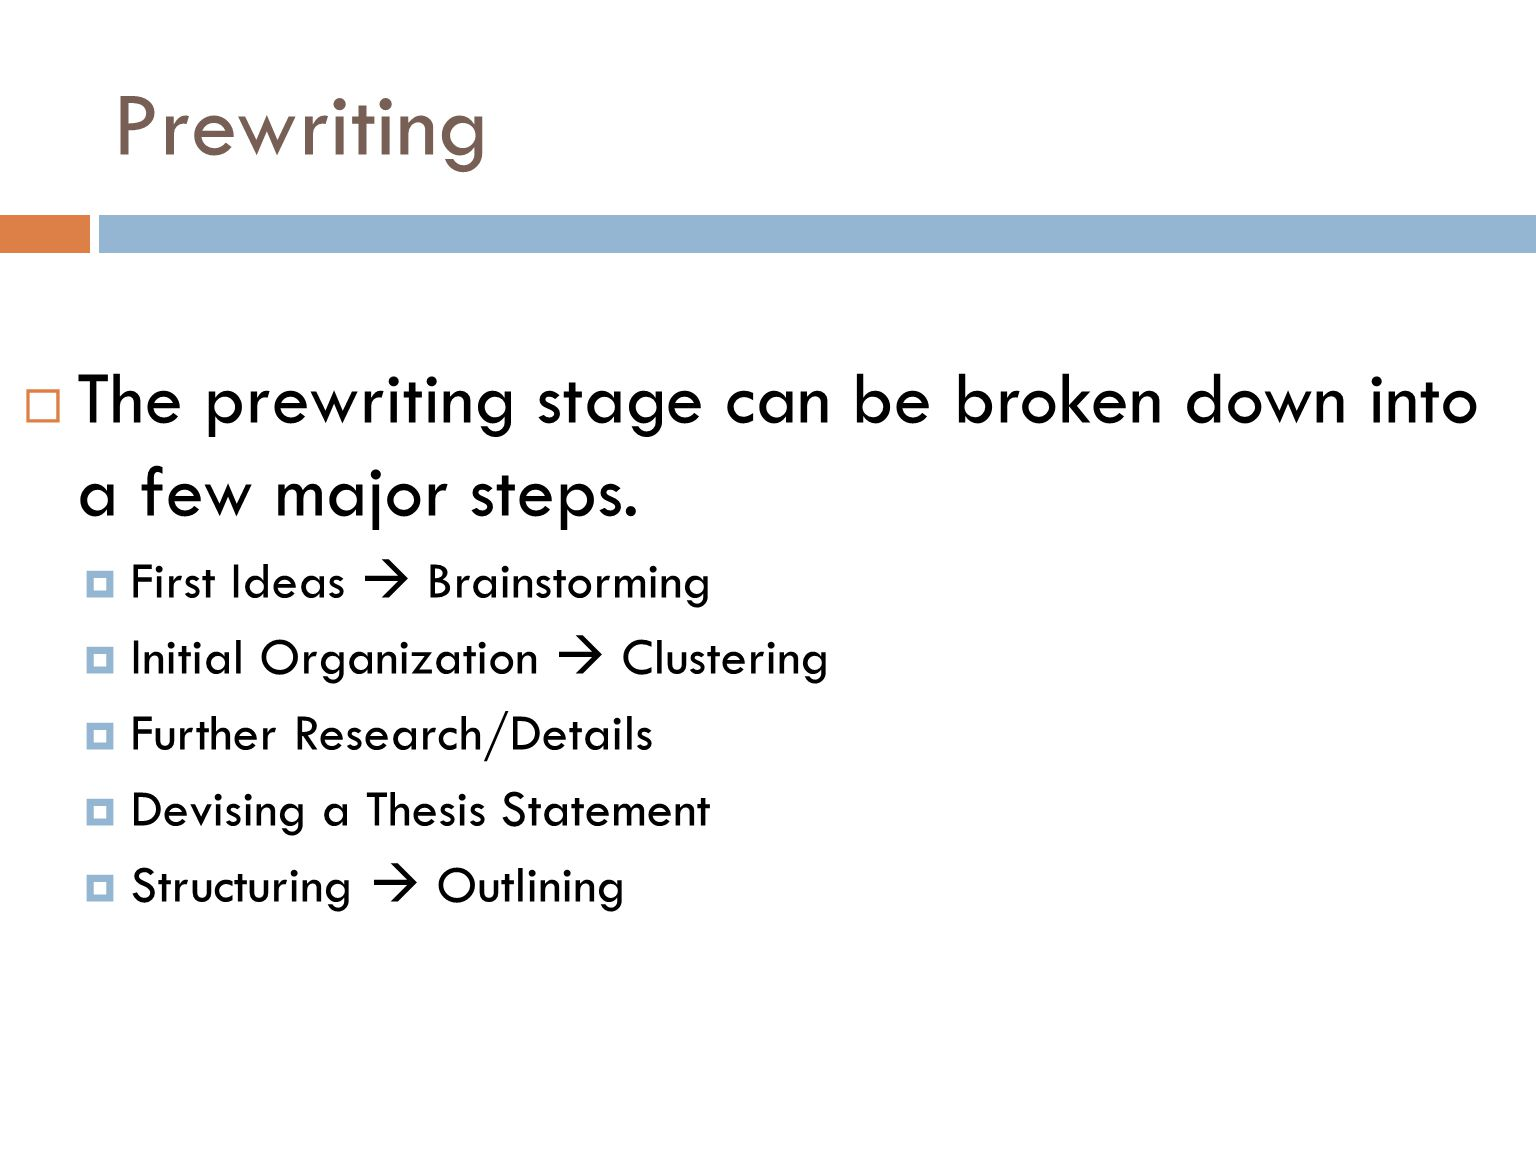 What steps are included in the prewriting phase of essay writing?